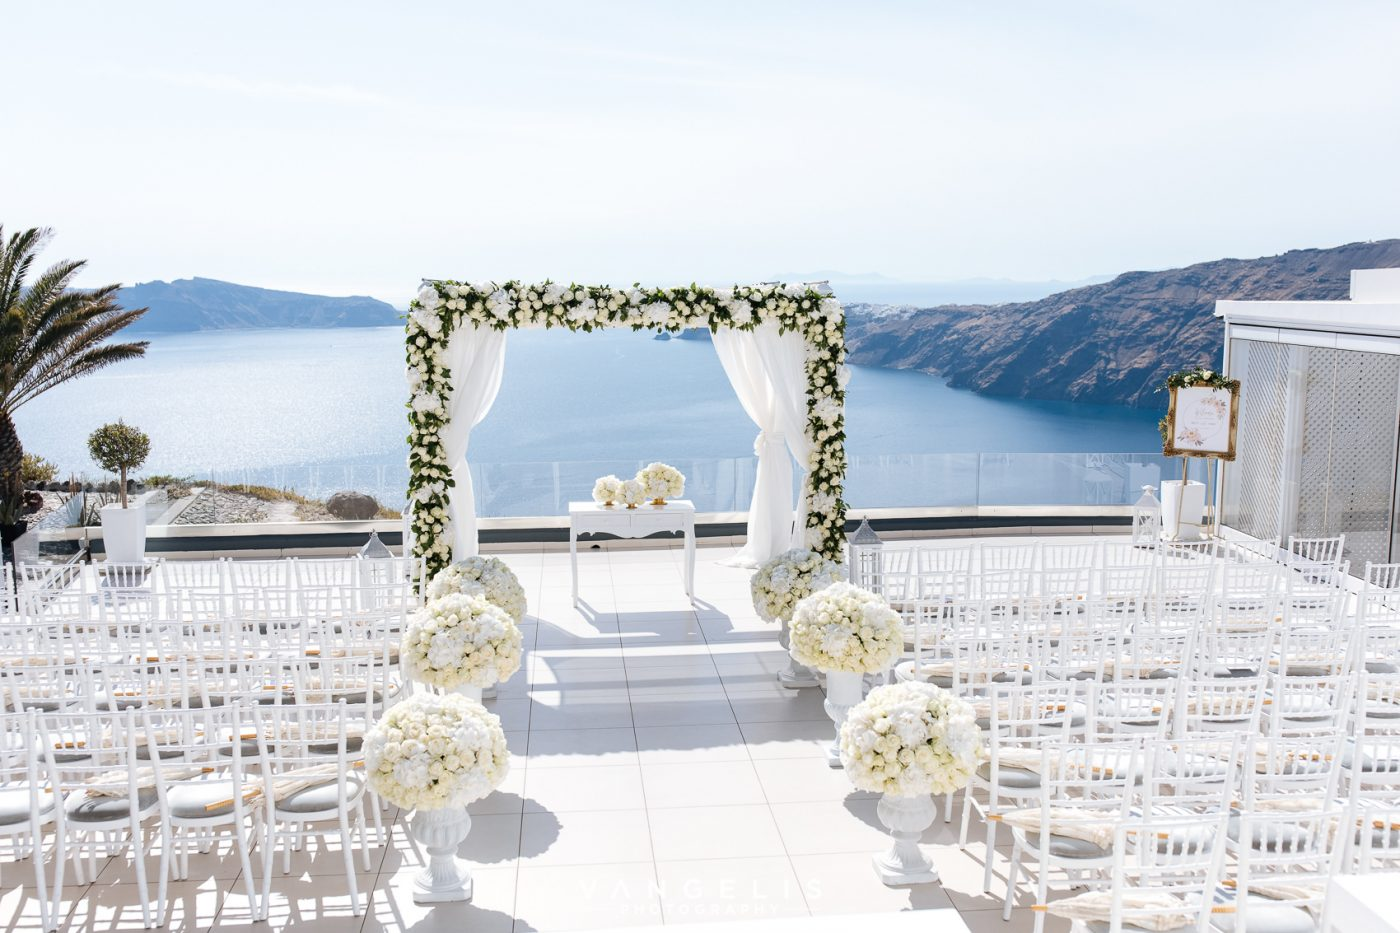 Le Ciel Santorini Wedding Venue